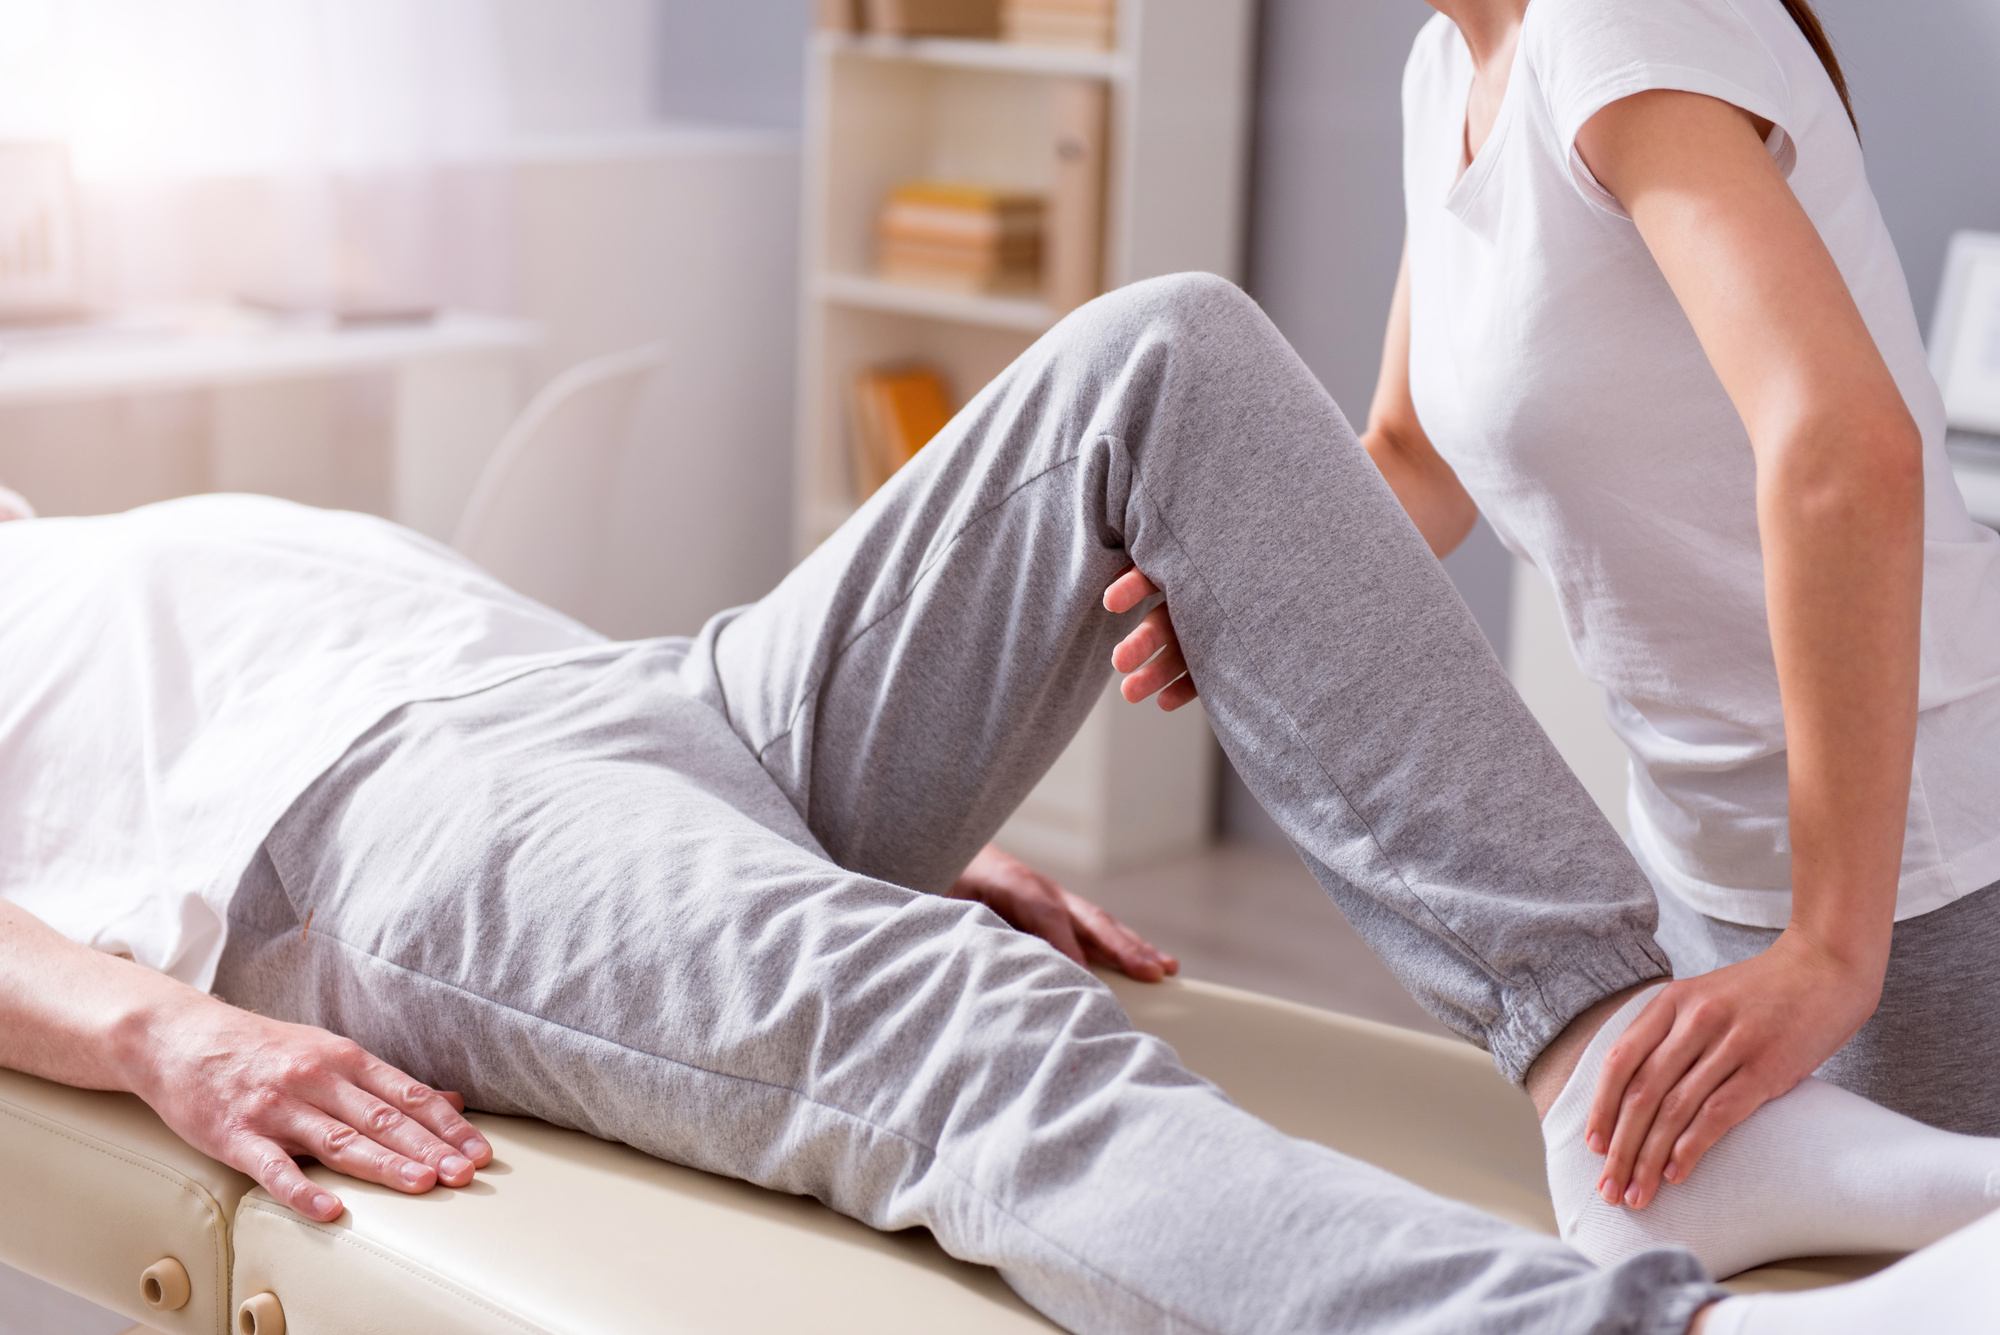 How to Find the Best Physical Therapist for Your Needs